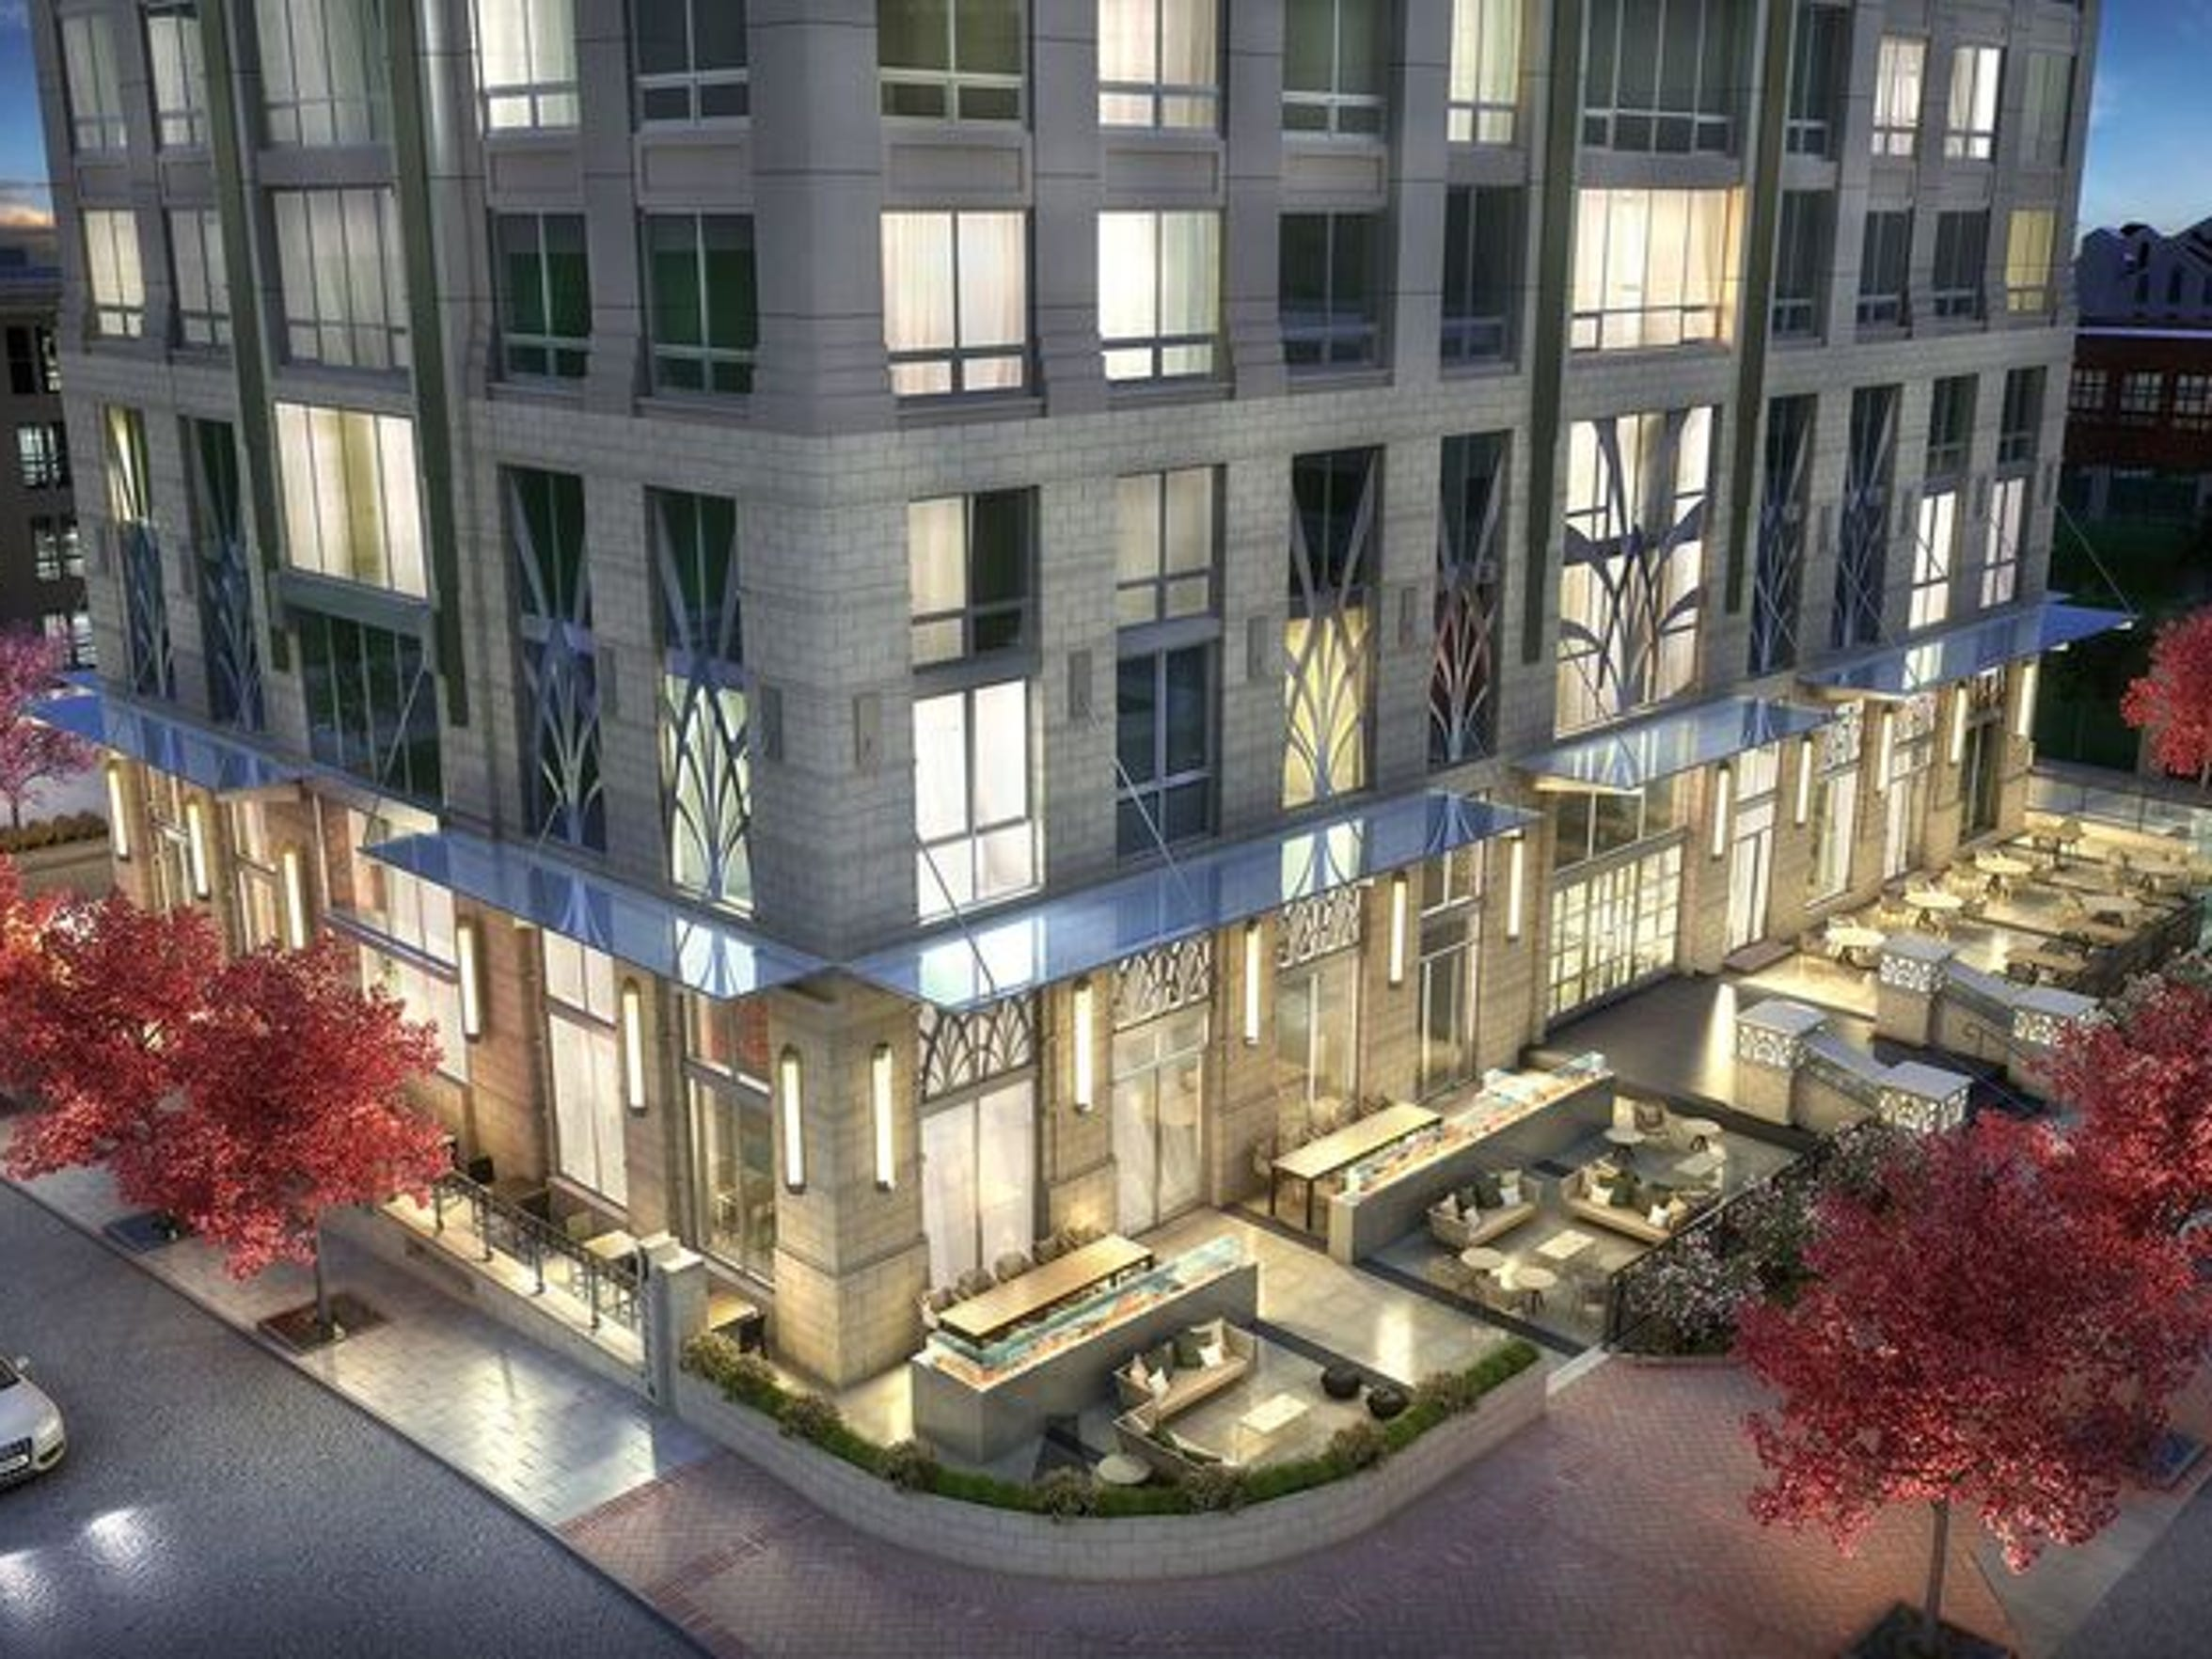 The Arras hotel/condominium building will create a